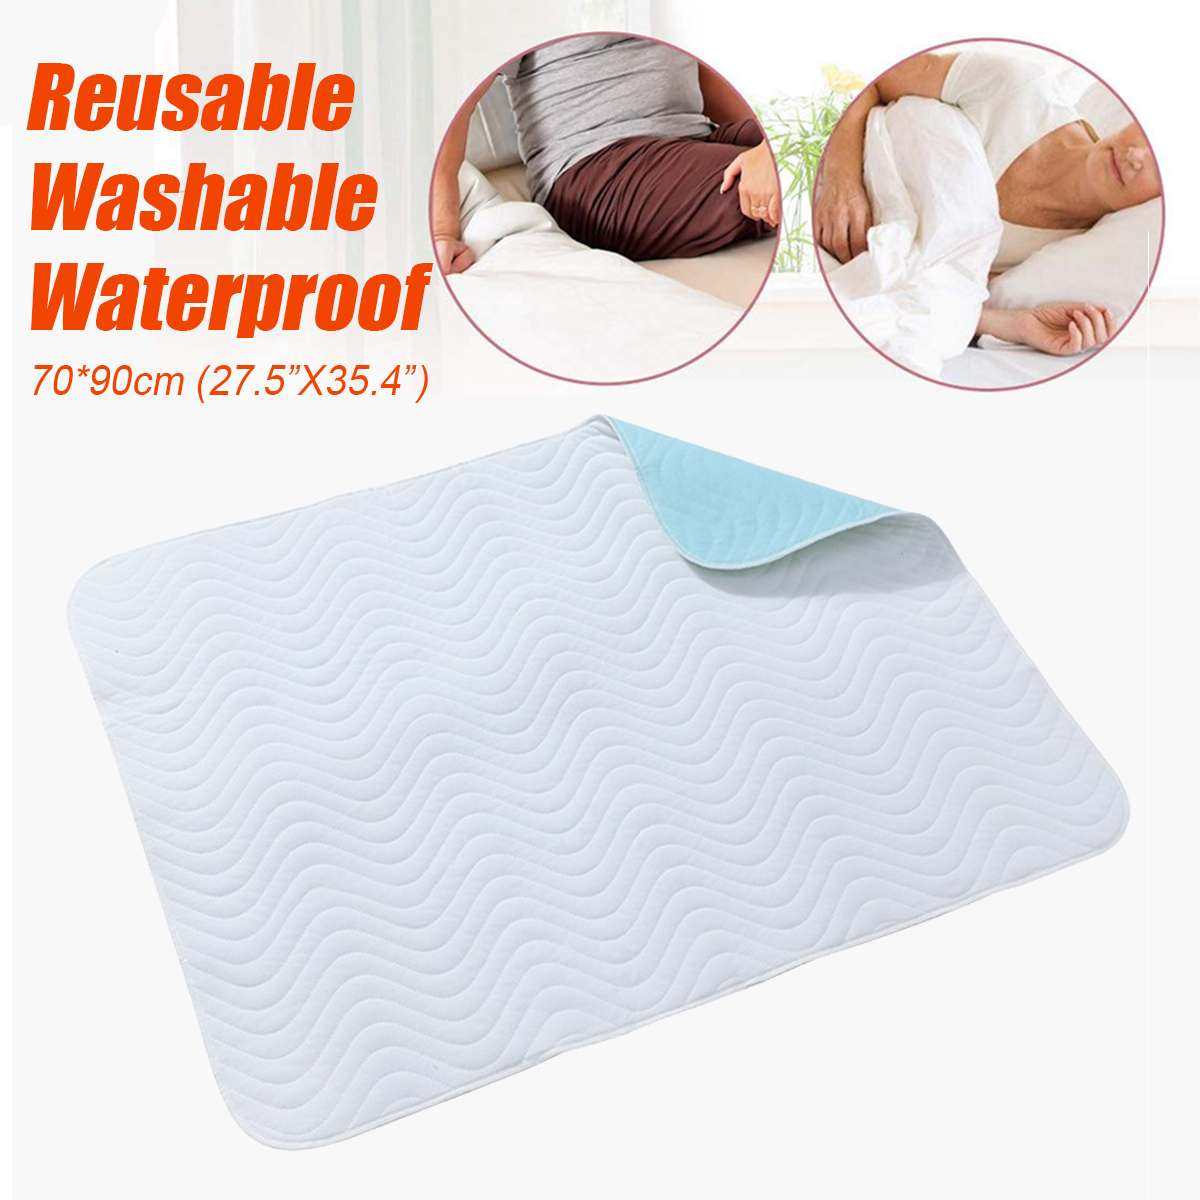 70*90cm Kids Adult Washable Reusable Protector Waterproof Underpad Bed Pad Polyester For Incontinence Patient Pad Cover Mattress image